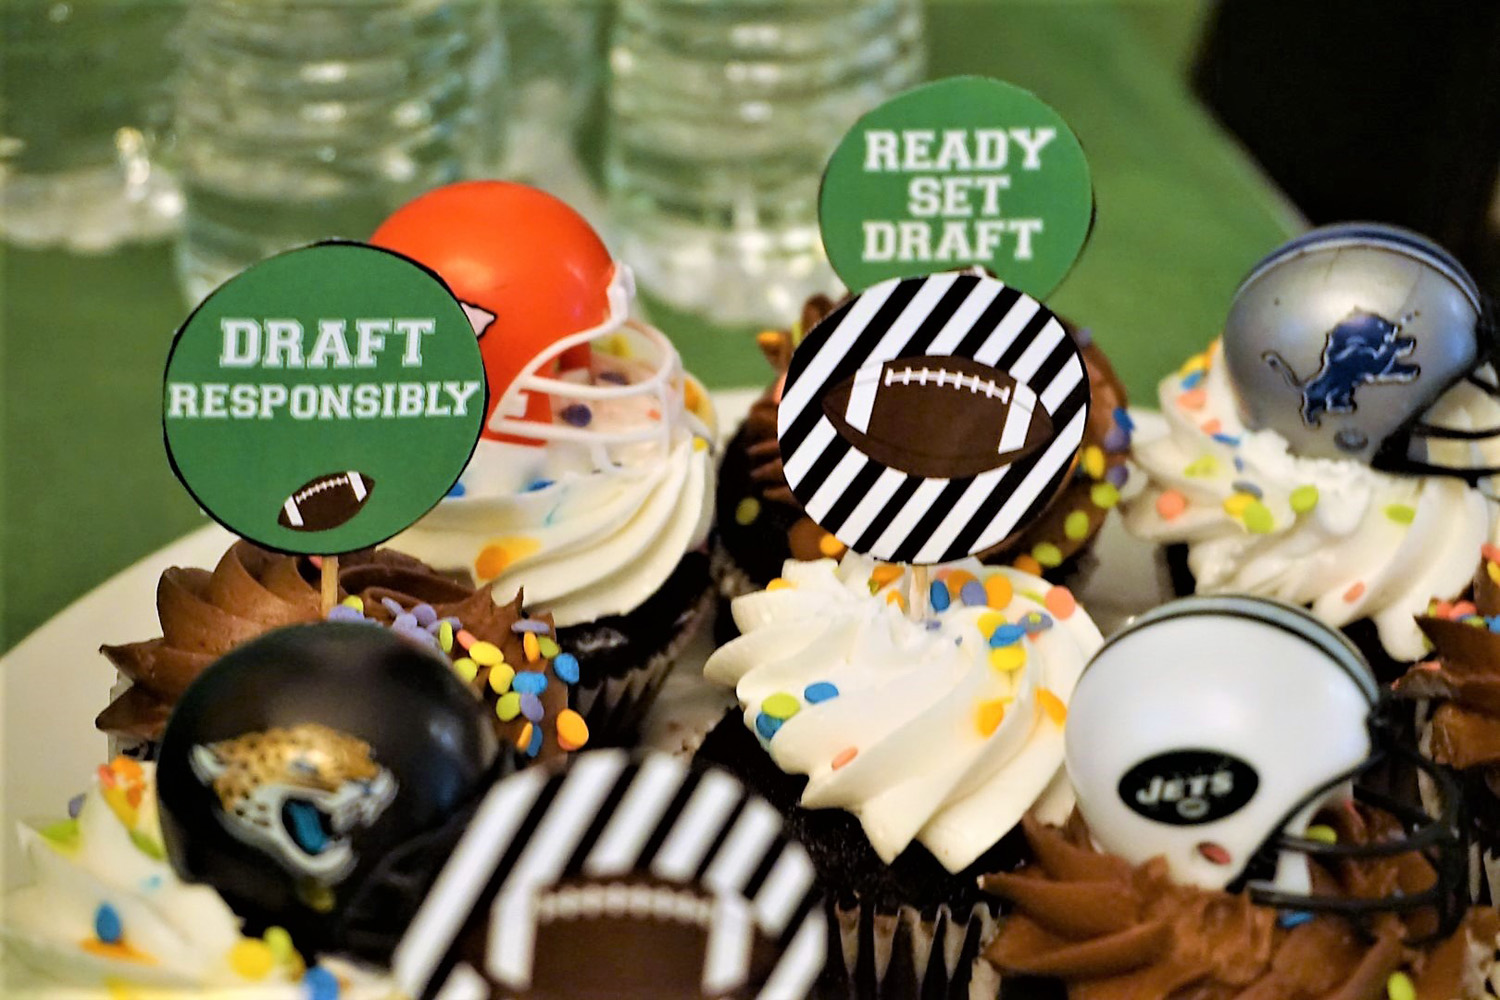 Use football themed printables to decorate cupcakes for fantasy football draft